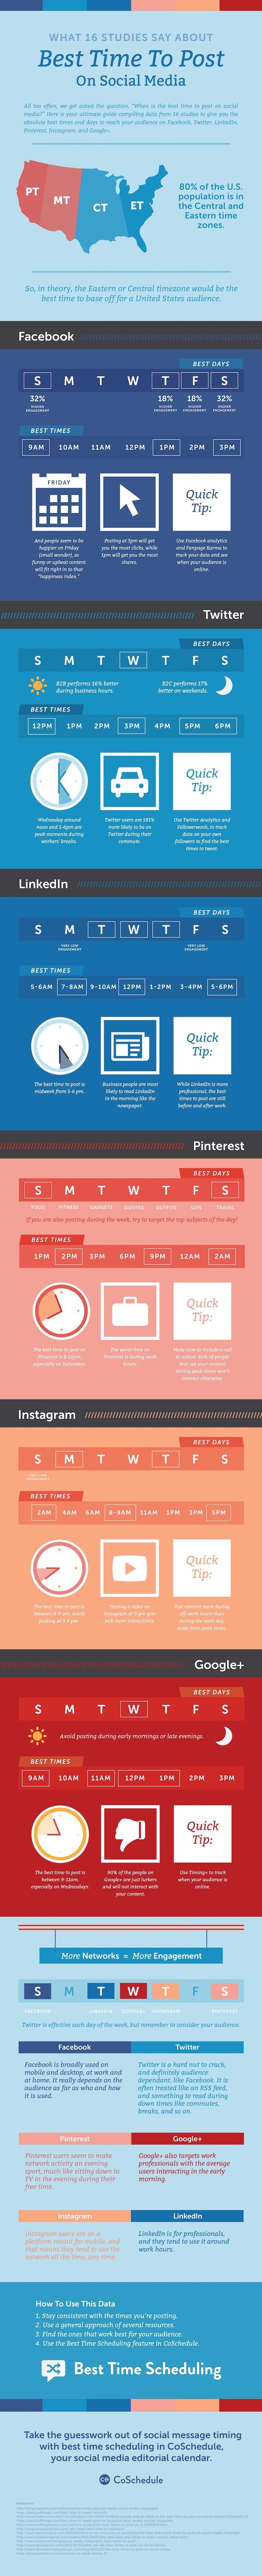 Infographic: What Are the Best Days and Times to Post on Social Media? Go tweak your schedule now!